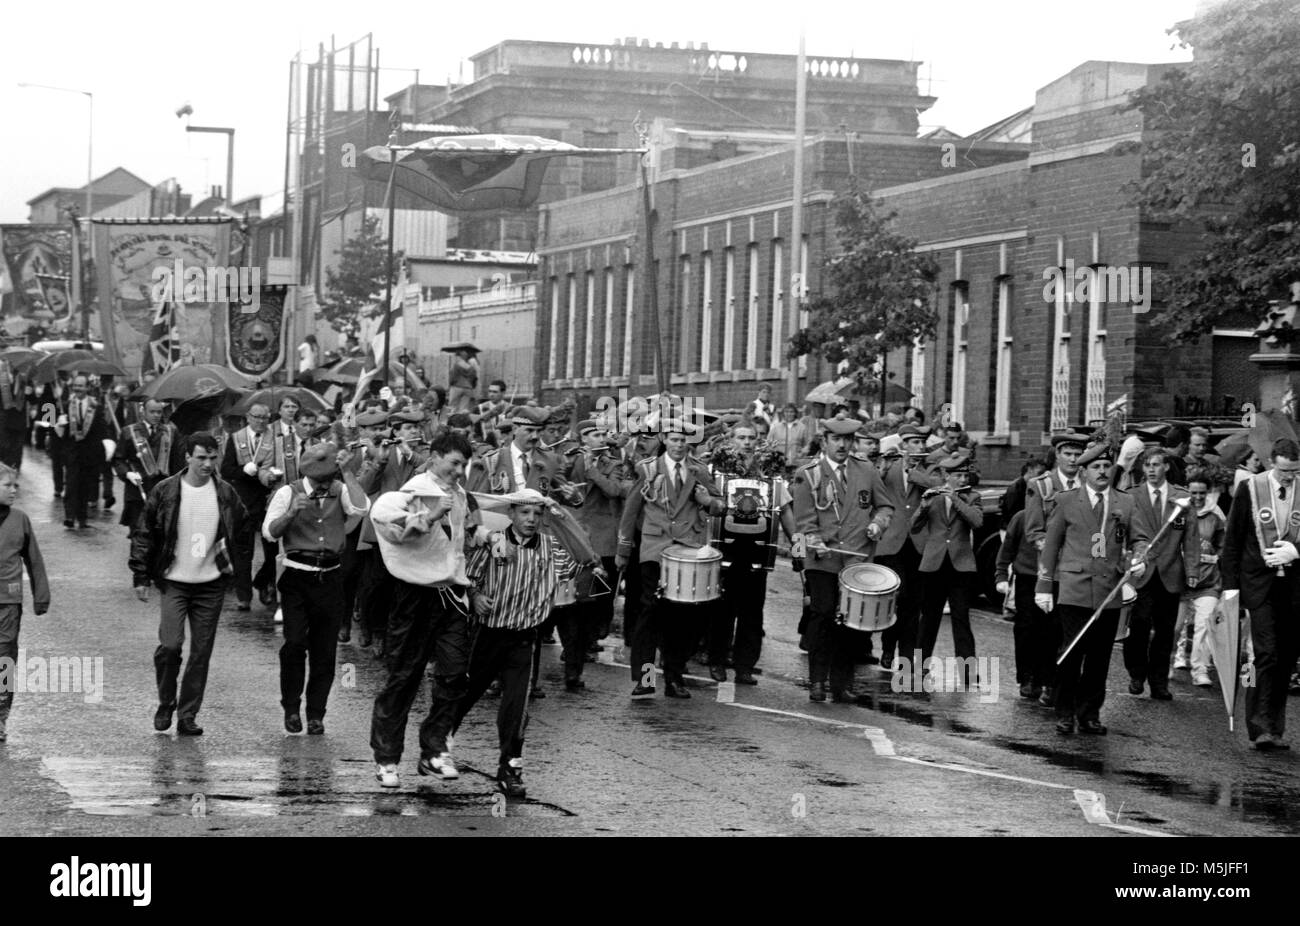 Black & white images showing the 12th of July in North Belfast, Northern Ireland. People in Northern Ireland - Stock Image